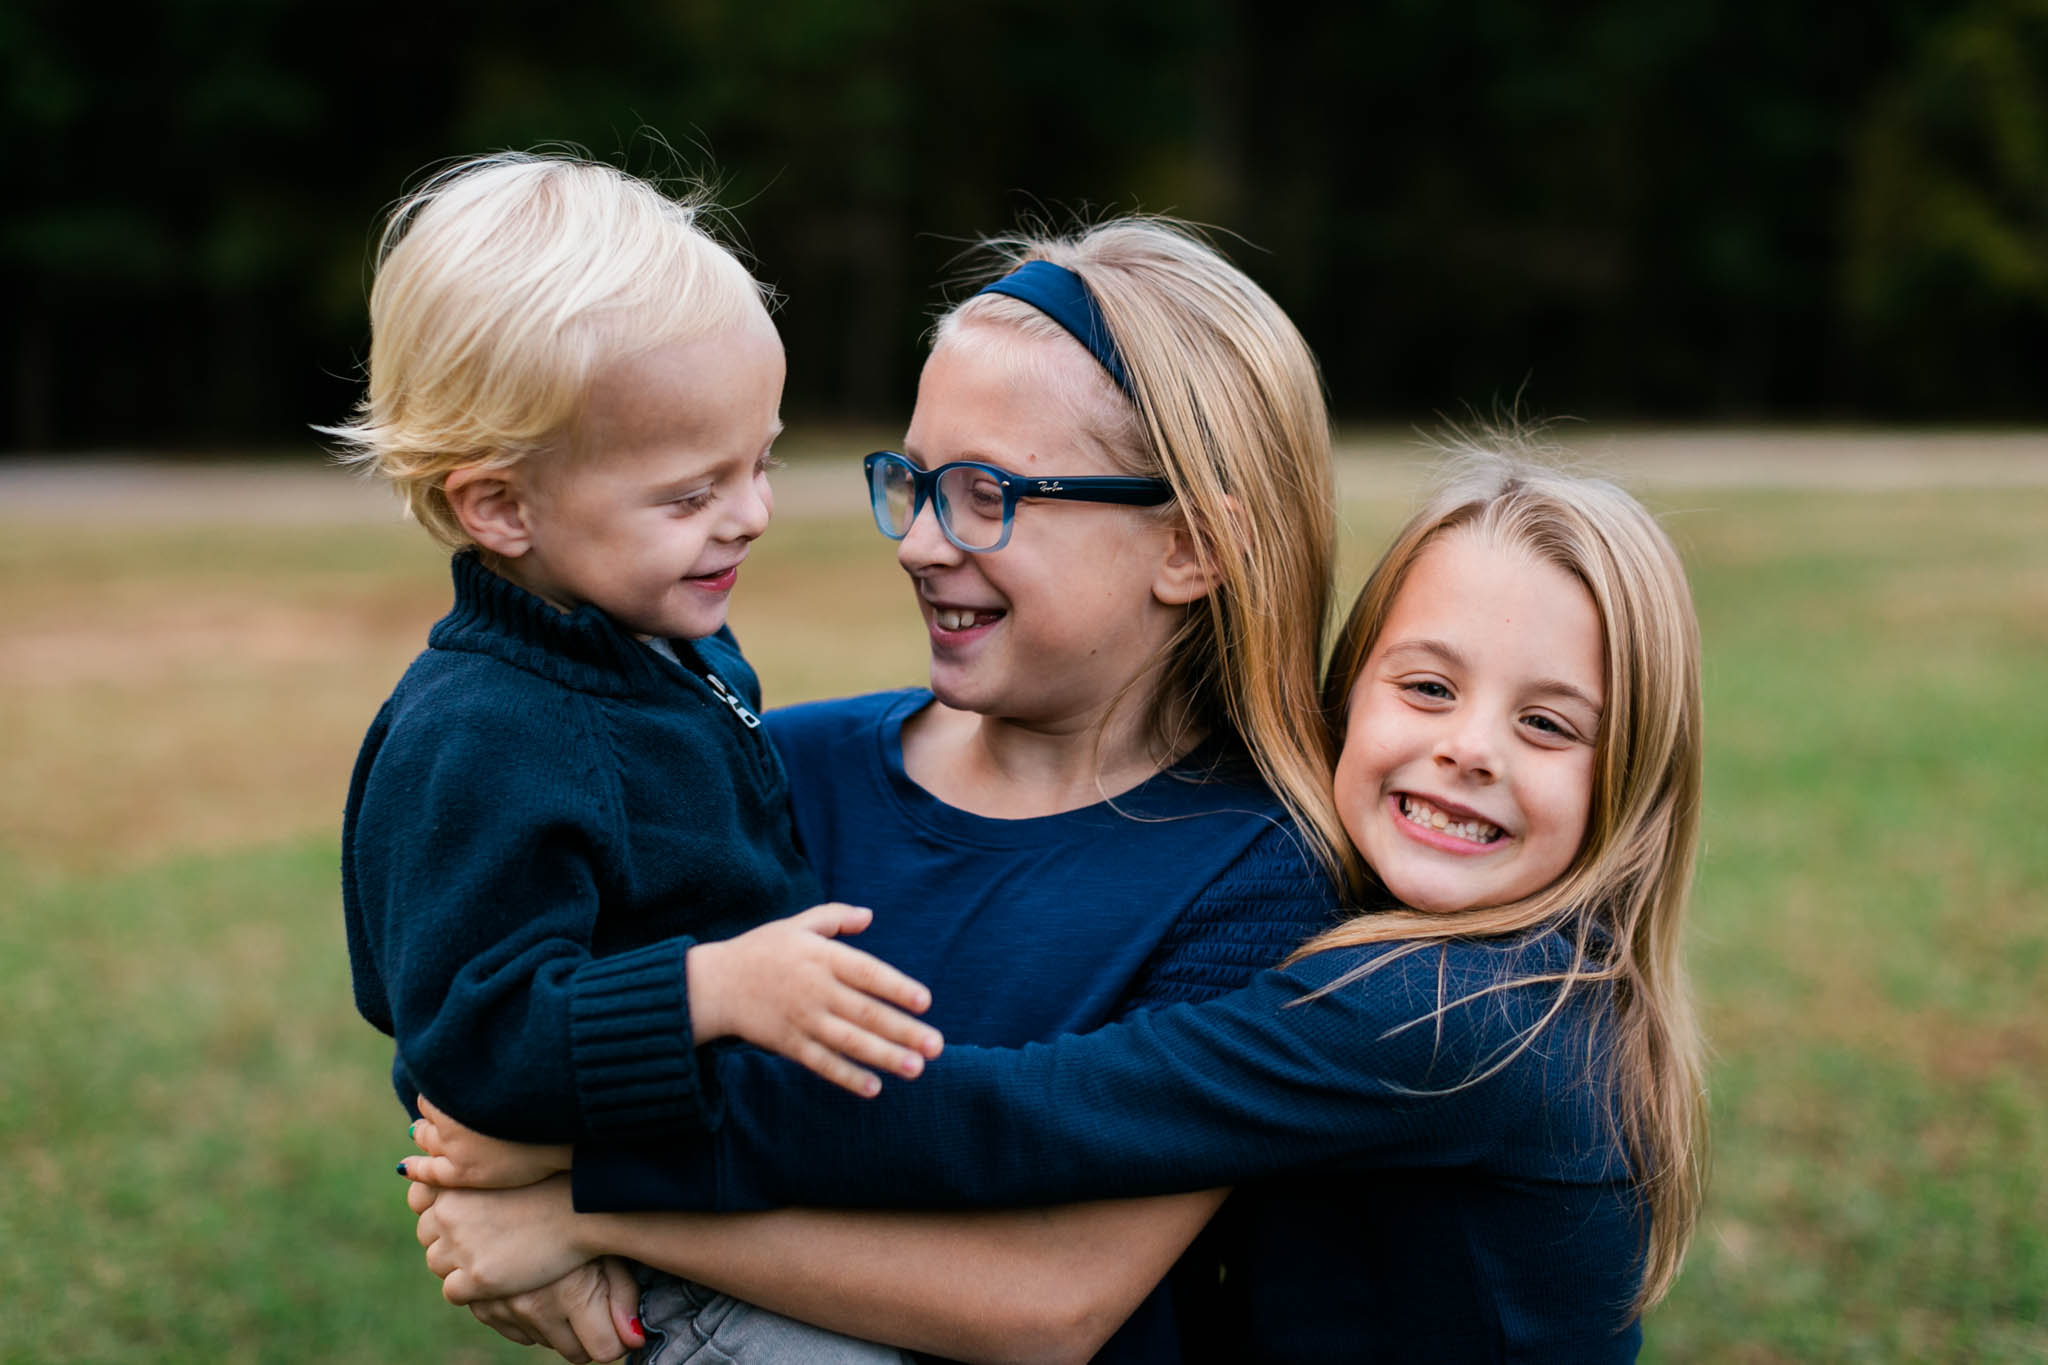 Sibling photo of three children at Umstead Park | Raleigh Family Photography | By G. Lin Photography